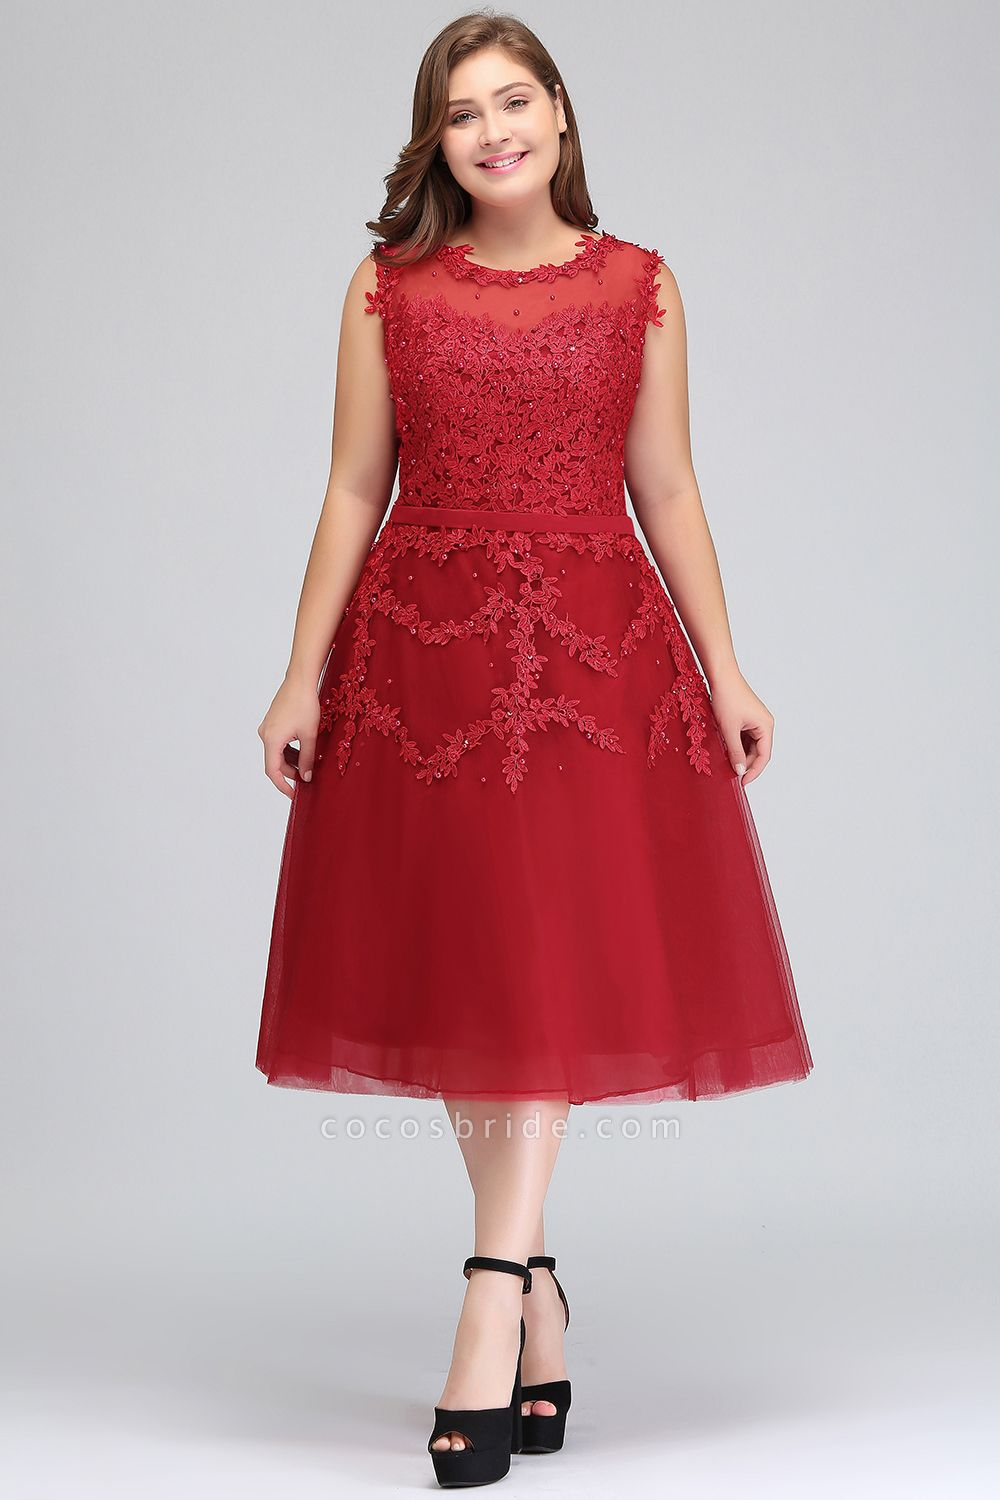 IRELAND   A-Line Crew Tea Length Plus size Sleeveless Tulle Burgundy Cocktail Dresses with Appliques